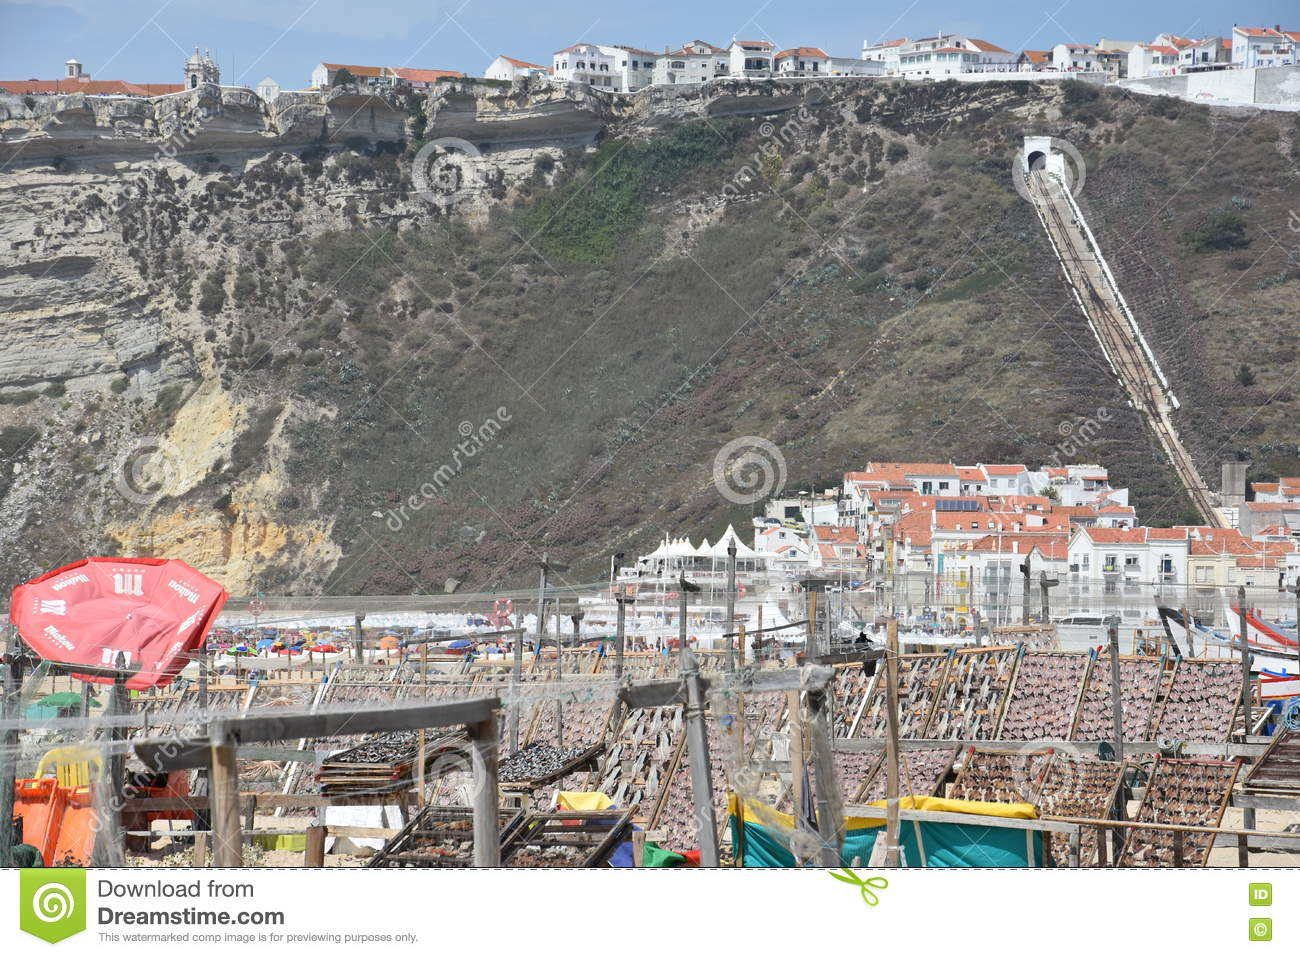 plage au village de p che de nazare au portugal photo stock ditorial image 76717753. Black Bedroom Furniture Sets. Home Design Ideas